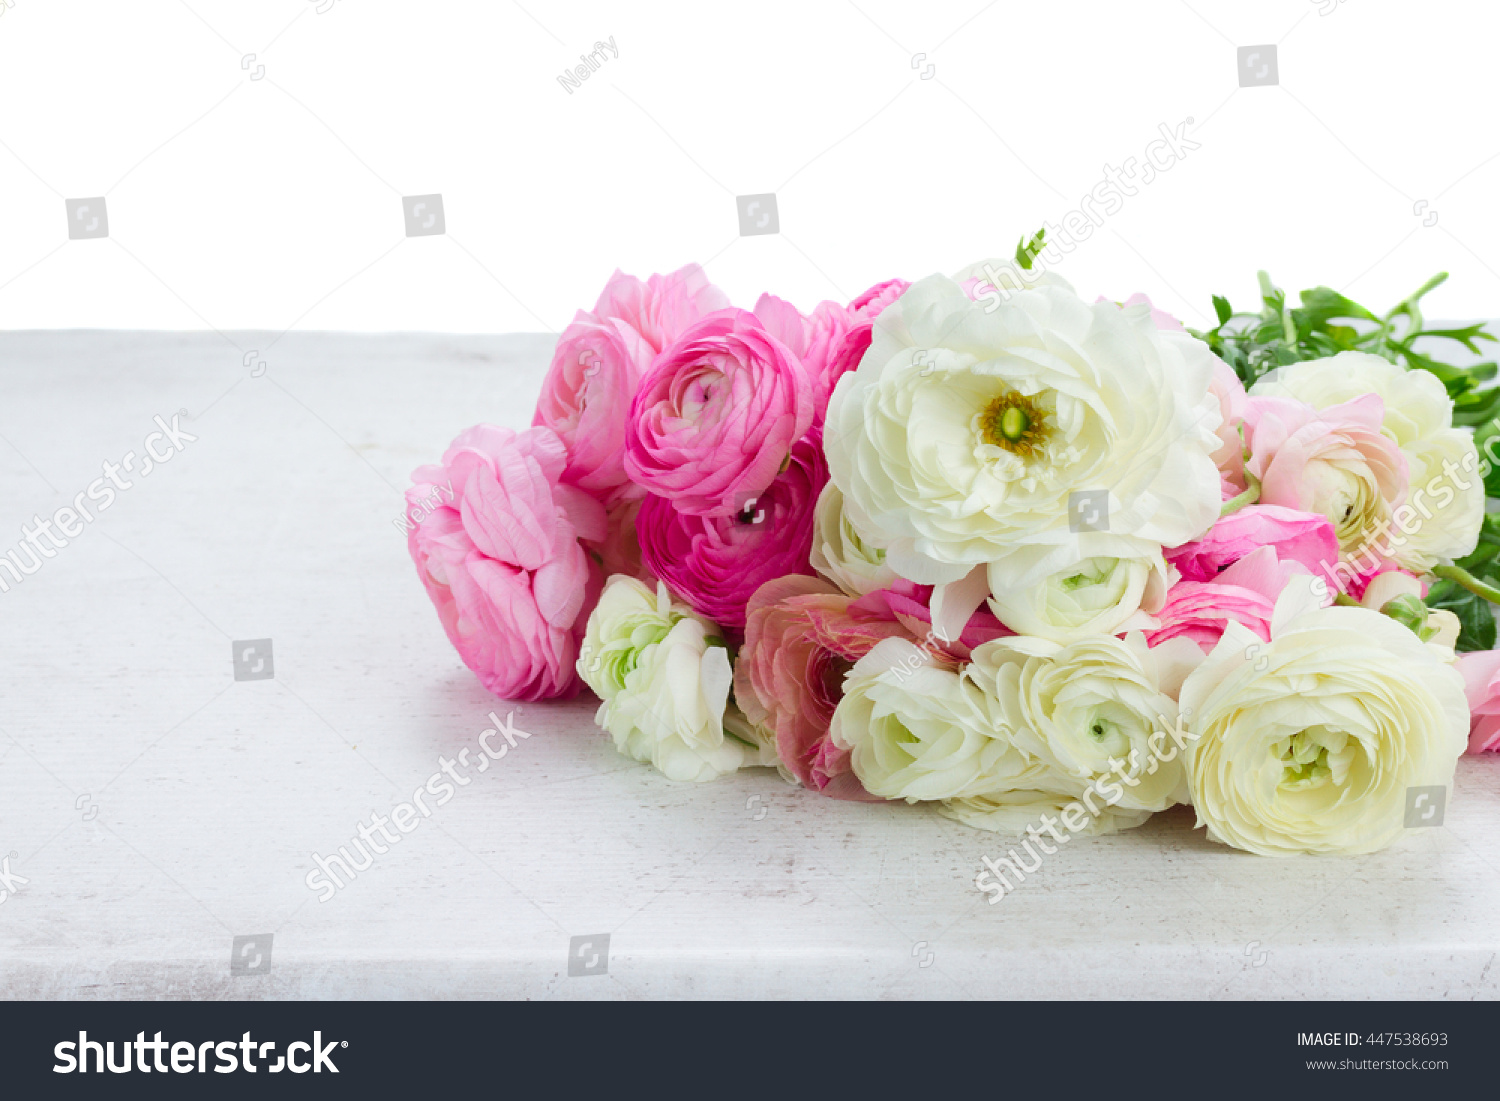 Pink And White Ranunculus Flowers On White Table Border Isolated On